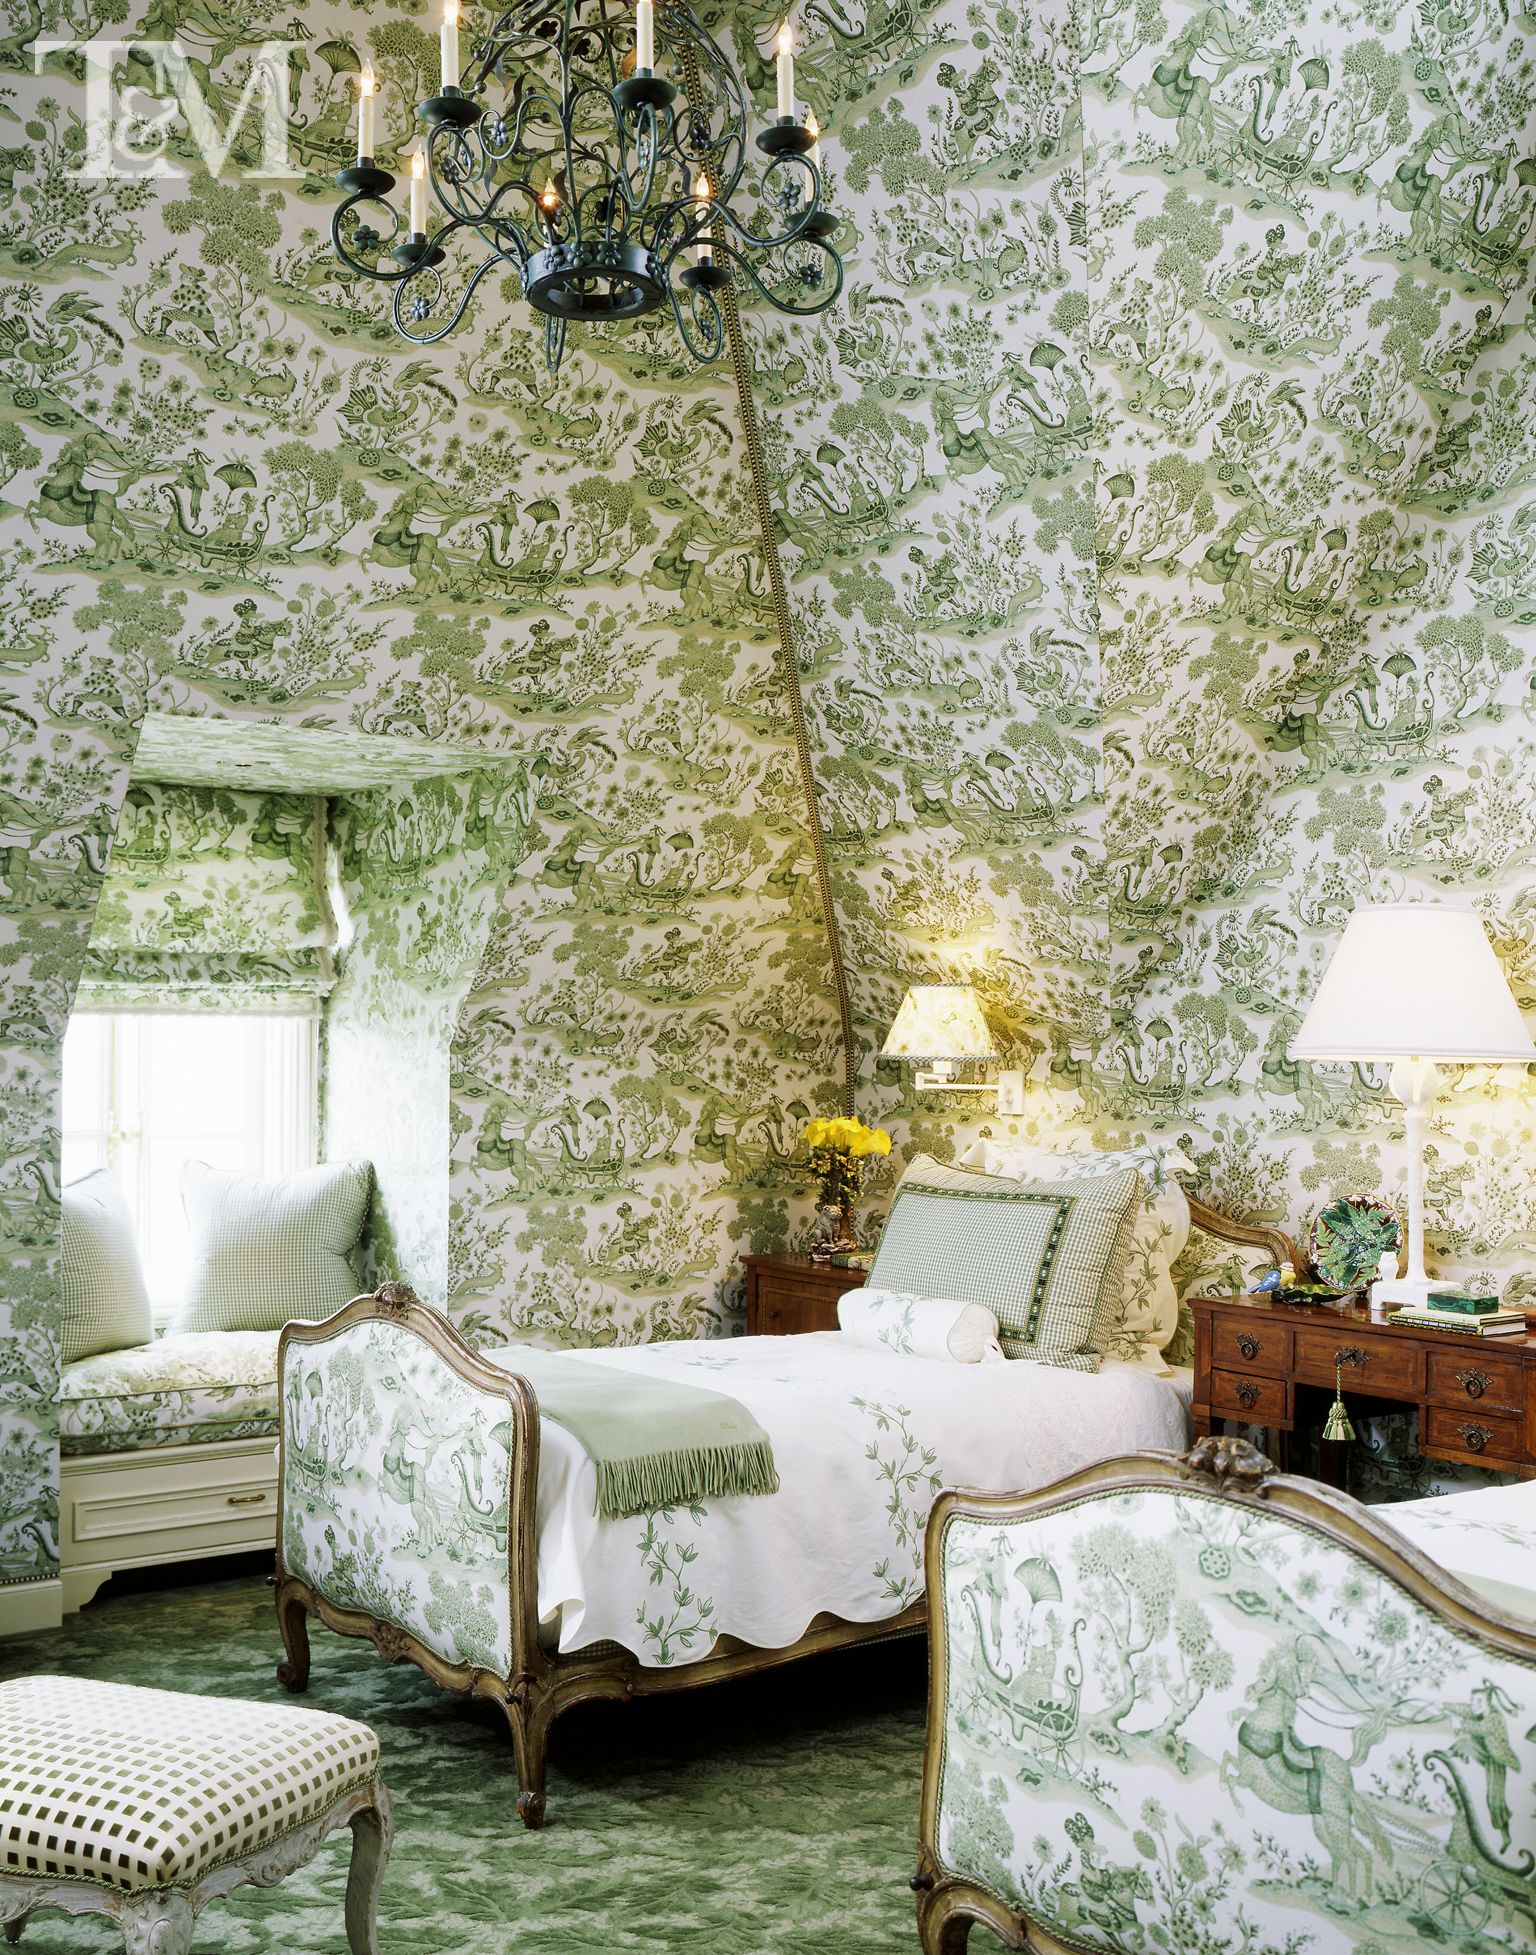 French bedroom with a very bold wallpaper design that surely catches